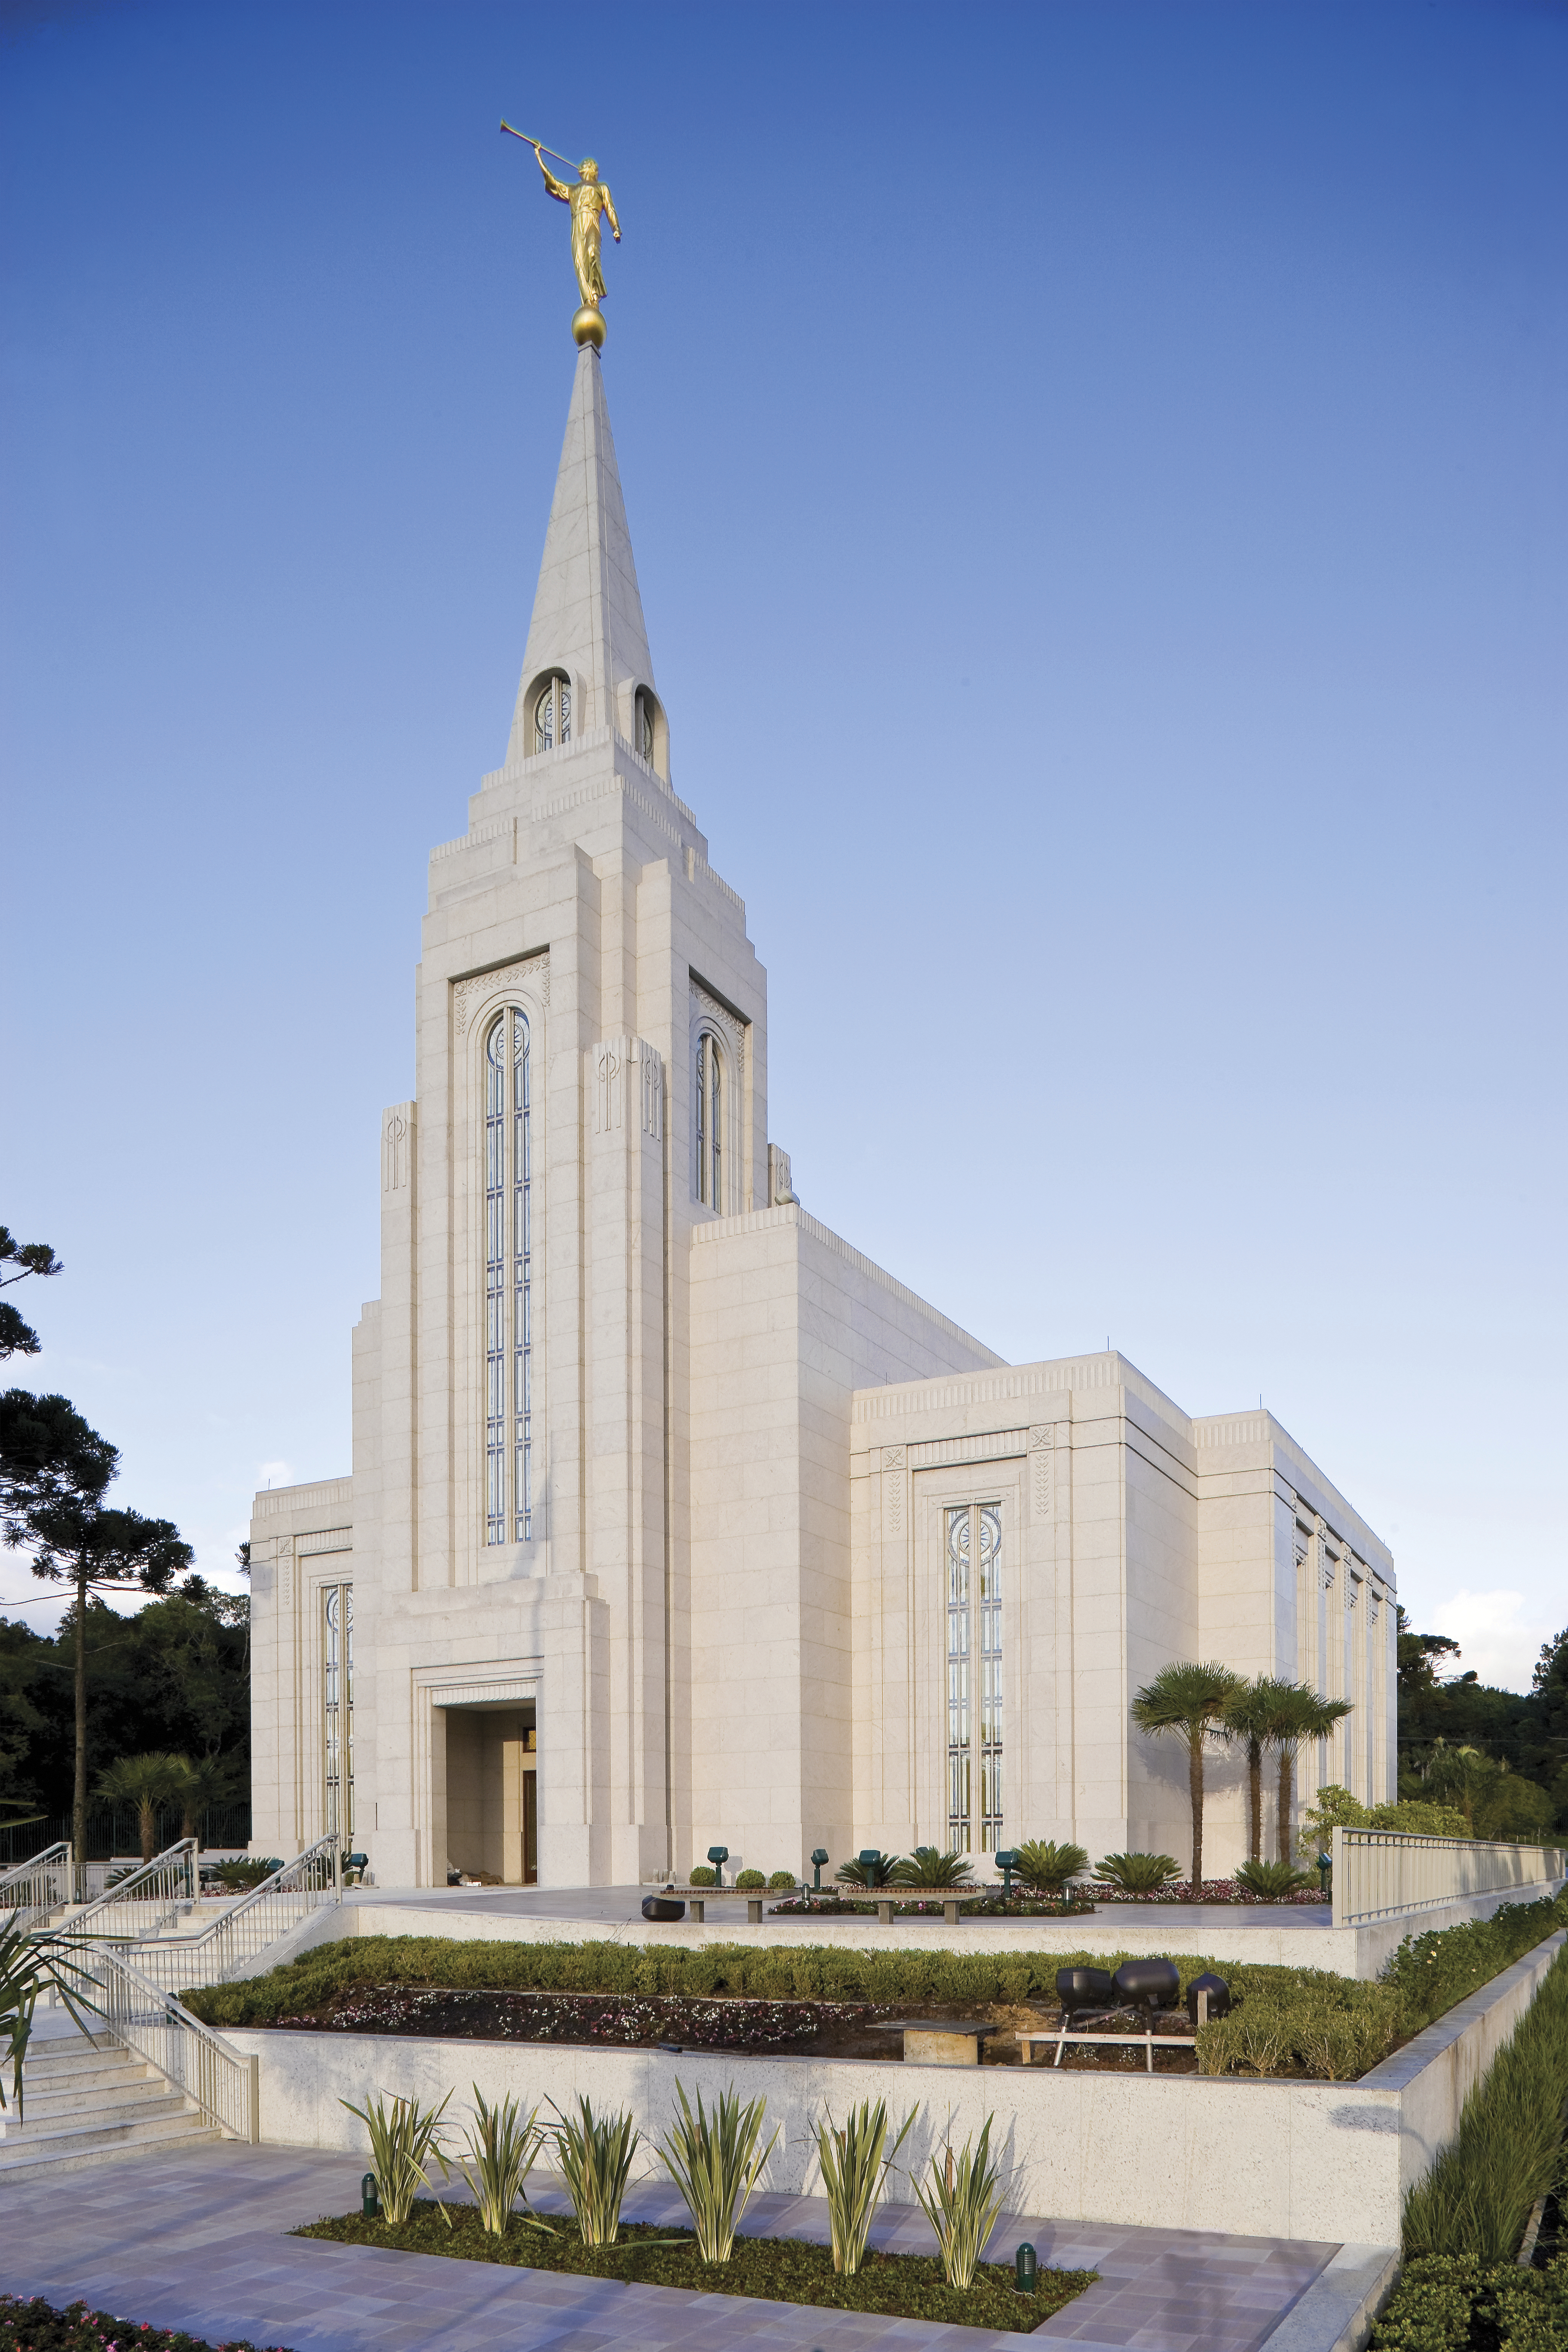 The Curitiba Brazil Temple during the day.